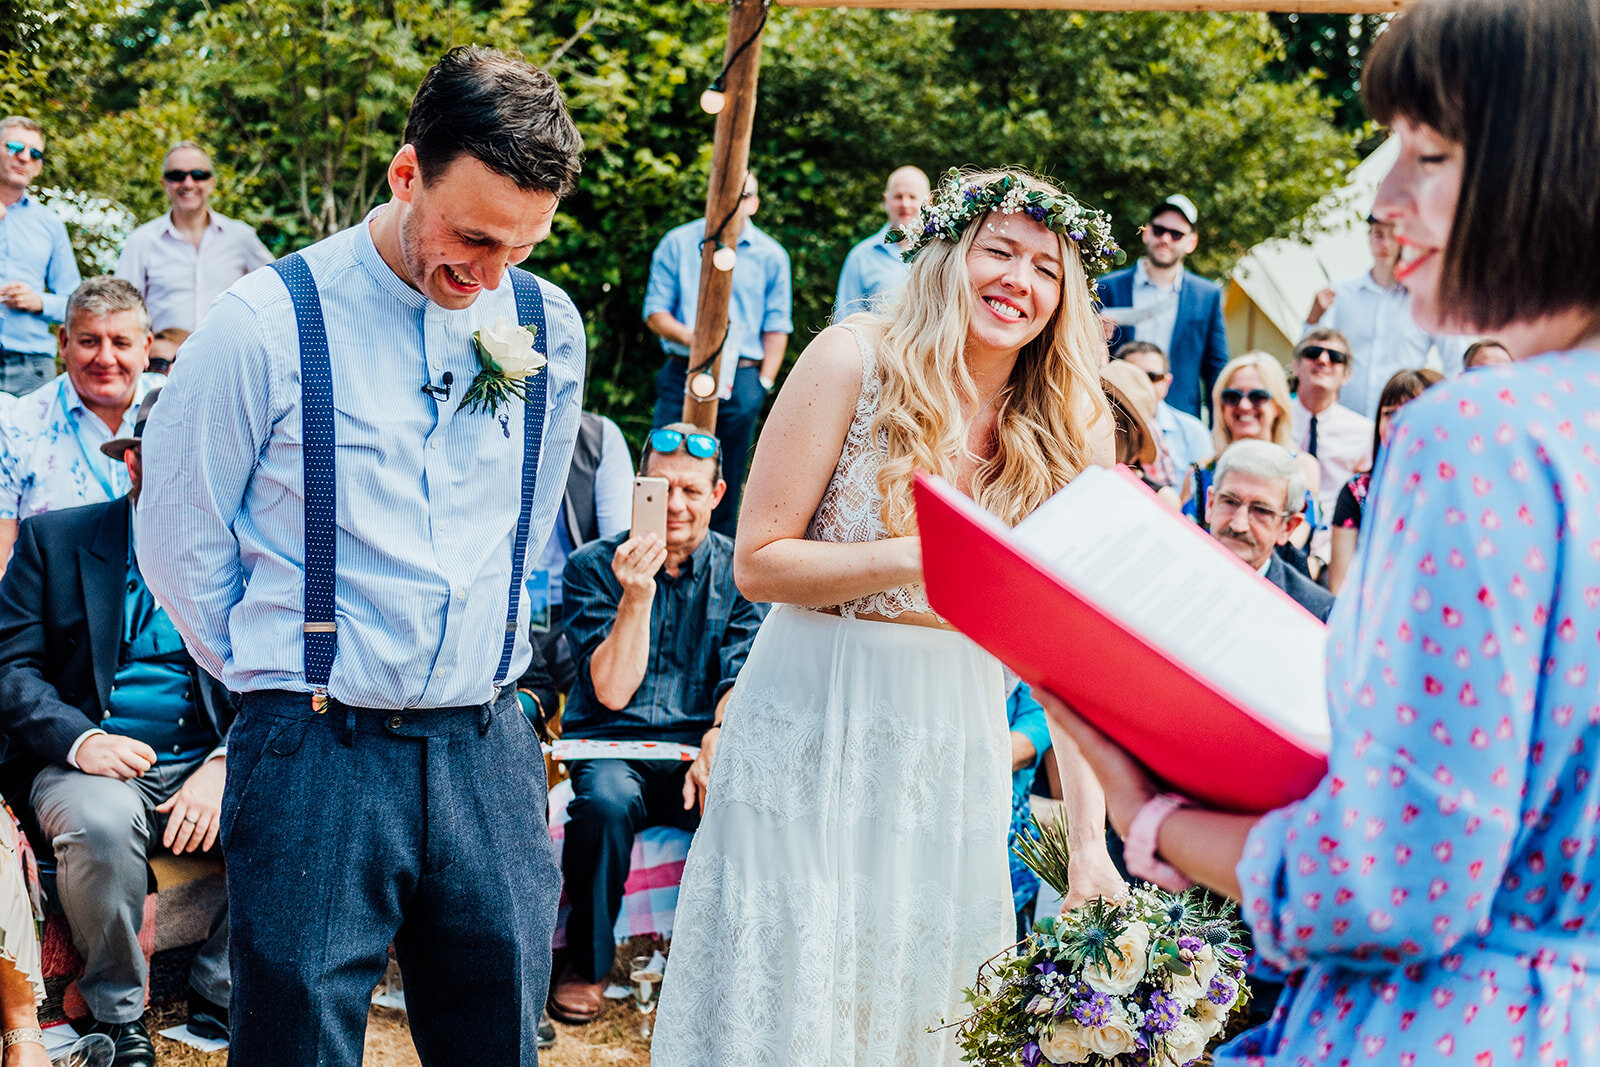 Chris and Polly feeling the love in their one of a kind humanist wedding ceremony! Image by  Anna Pumer Photography